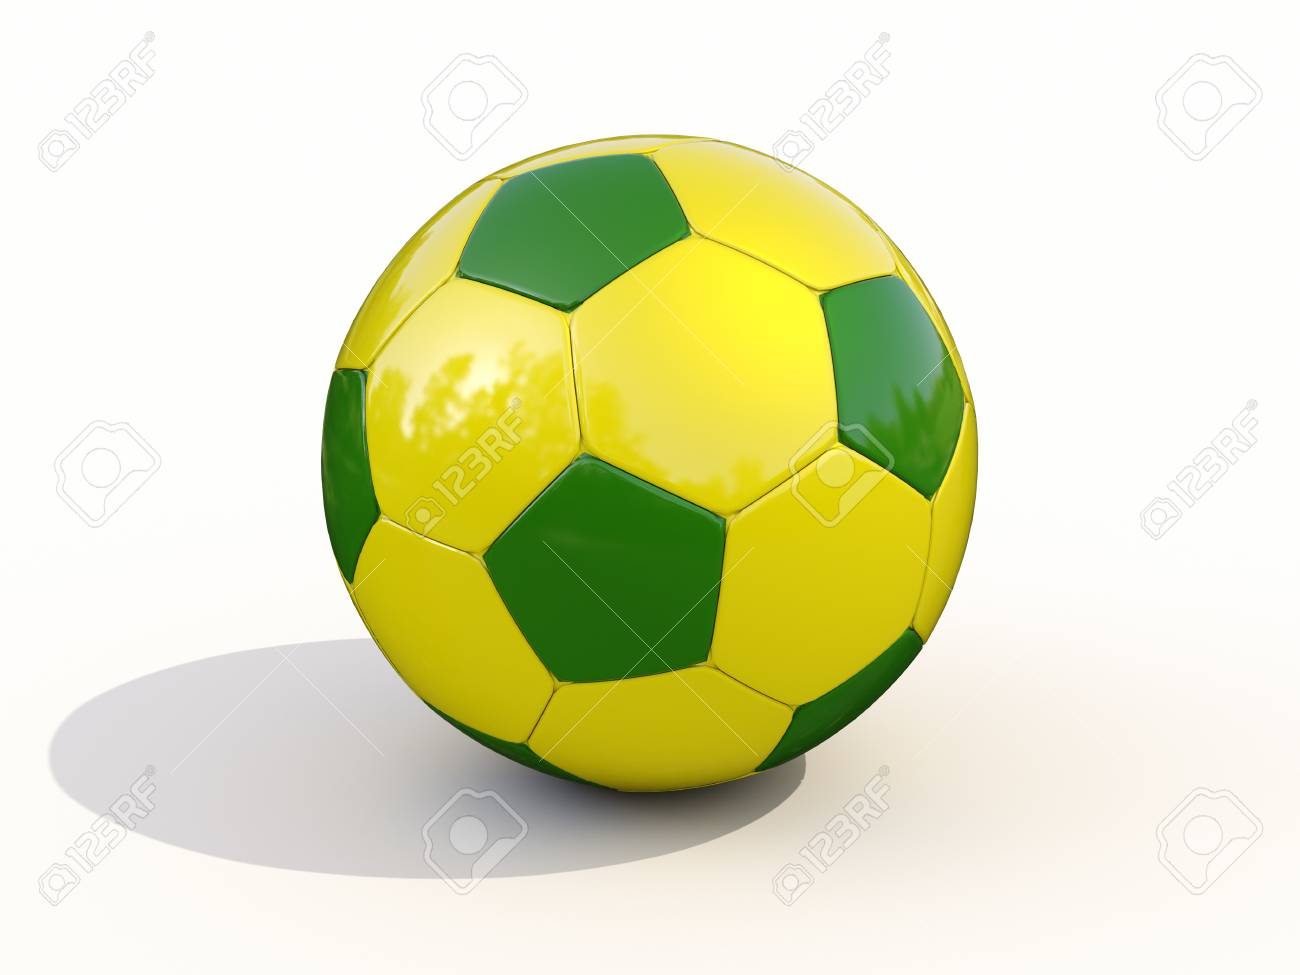 9a520d7a6 Brazilian Soccer Ball On White Background Stock Photo, Picture And ...